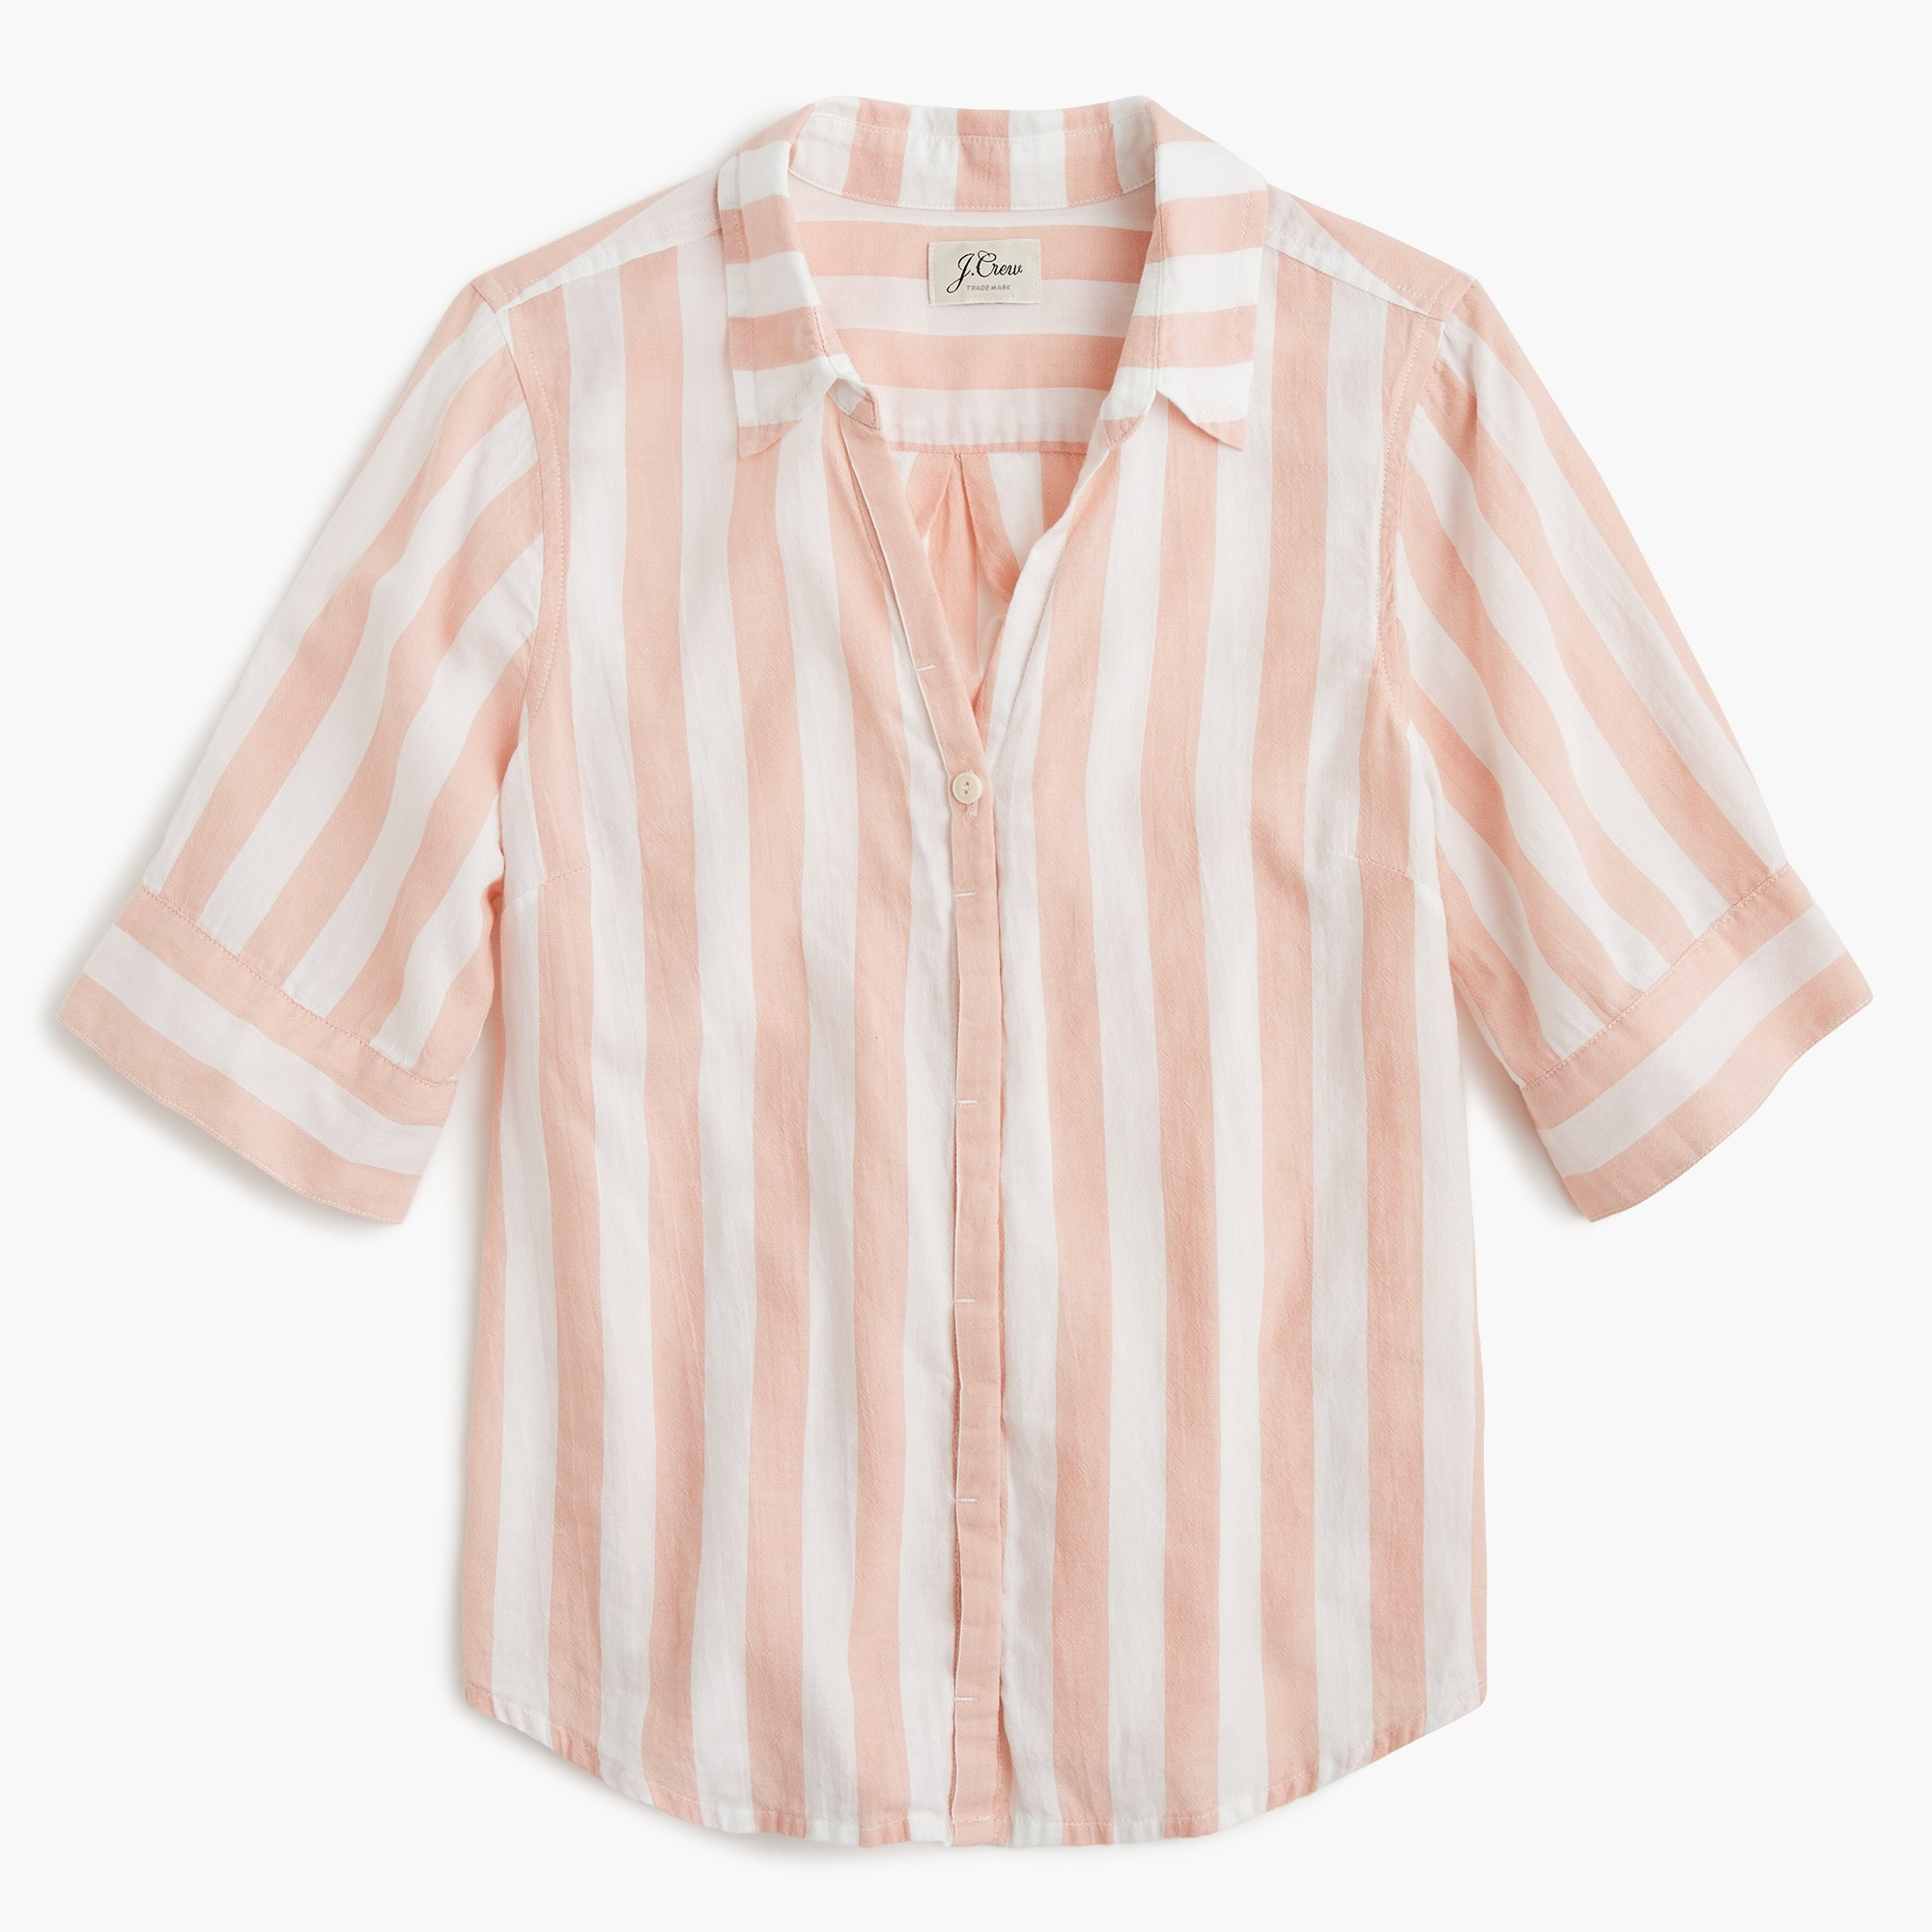 Classic Short-sleeve button-up shirt in wide stripe